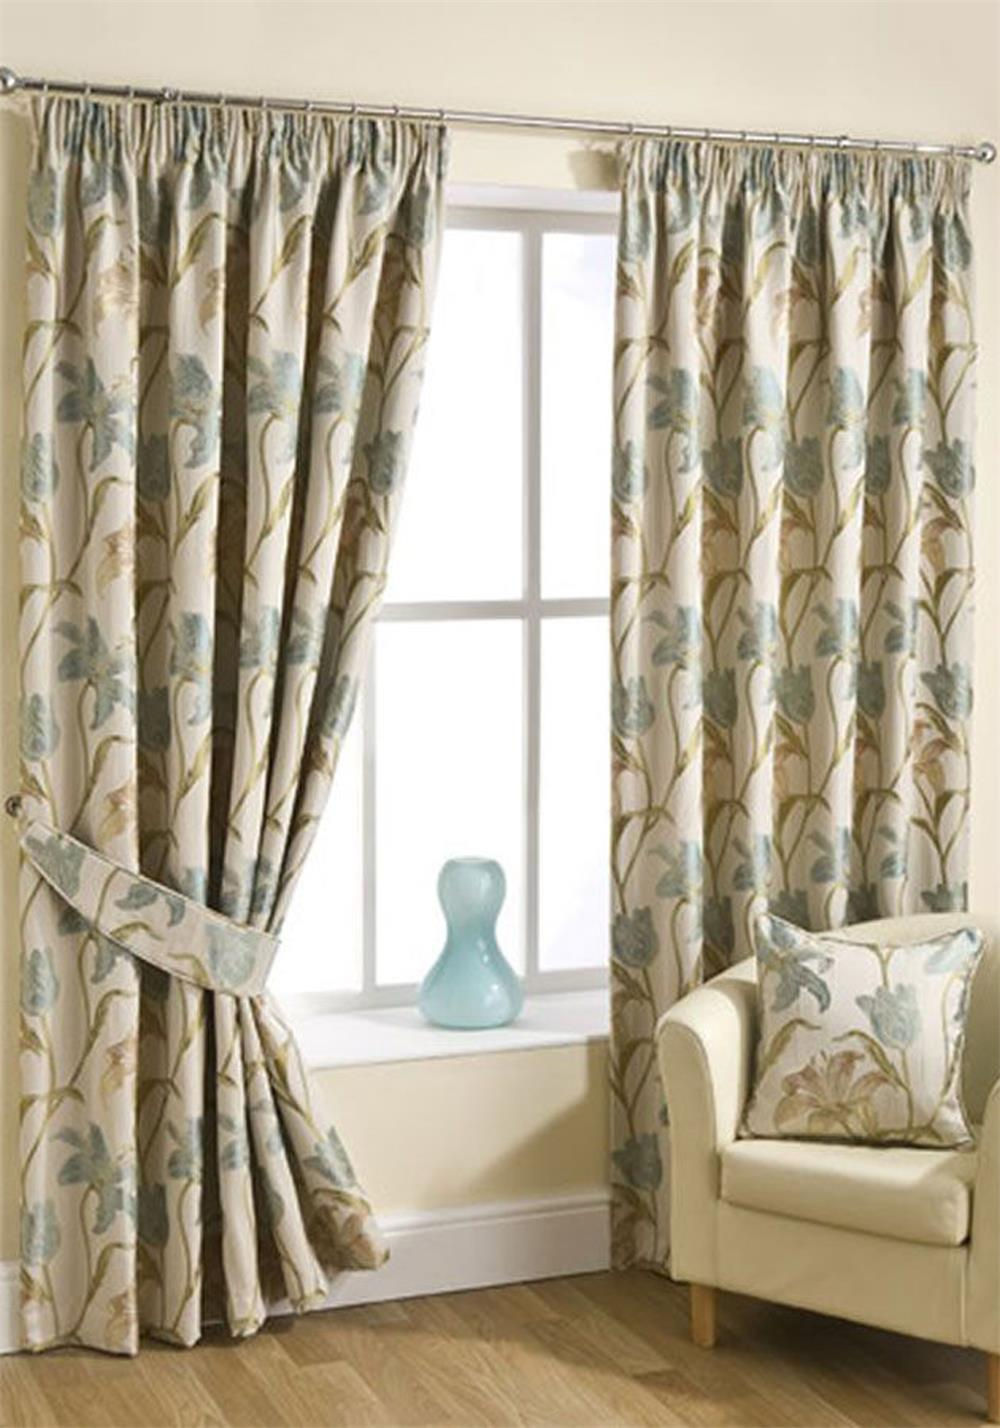 Hickeys Lily Ready Made Pencil Pleat Curtains, Aqua